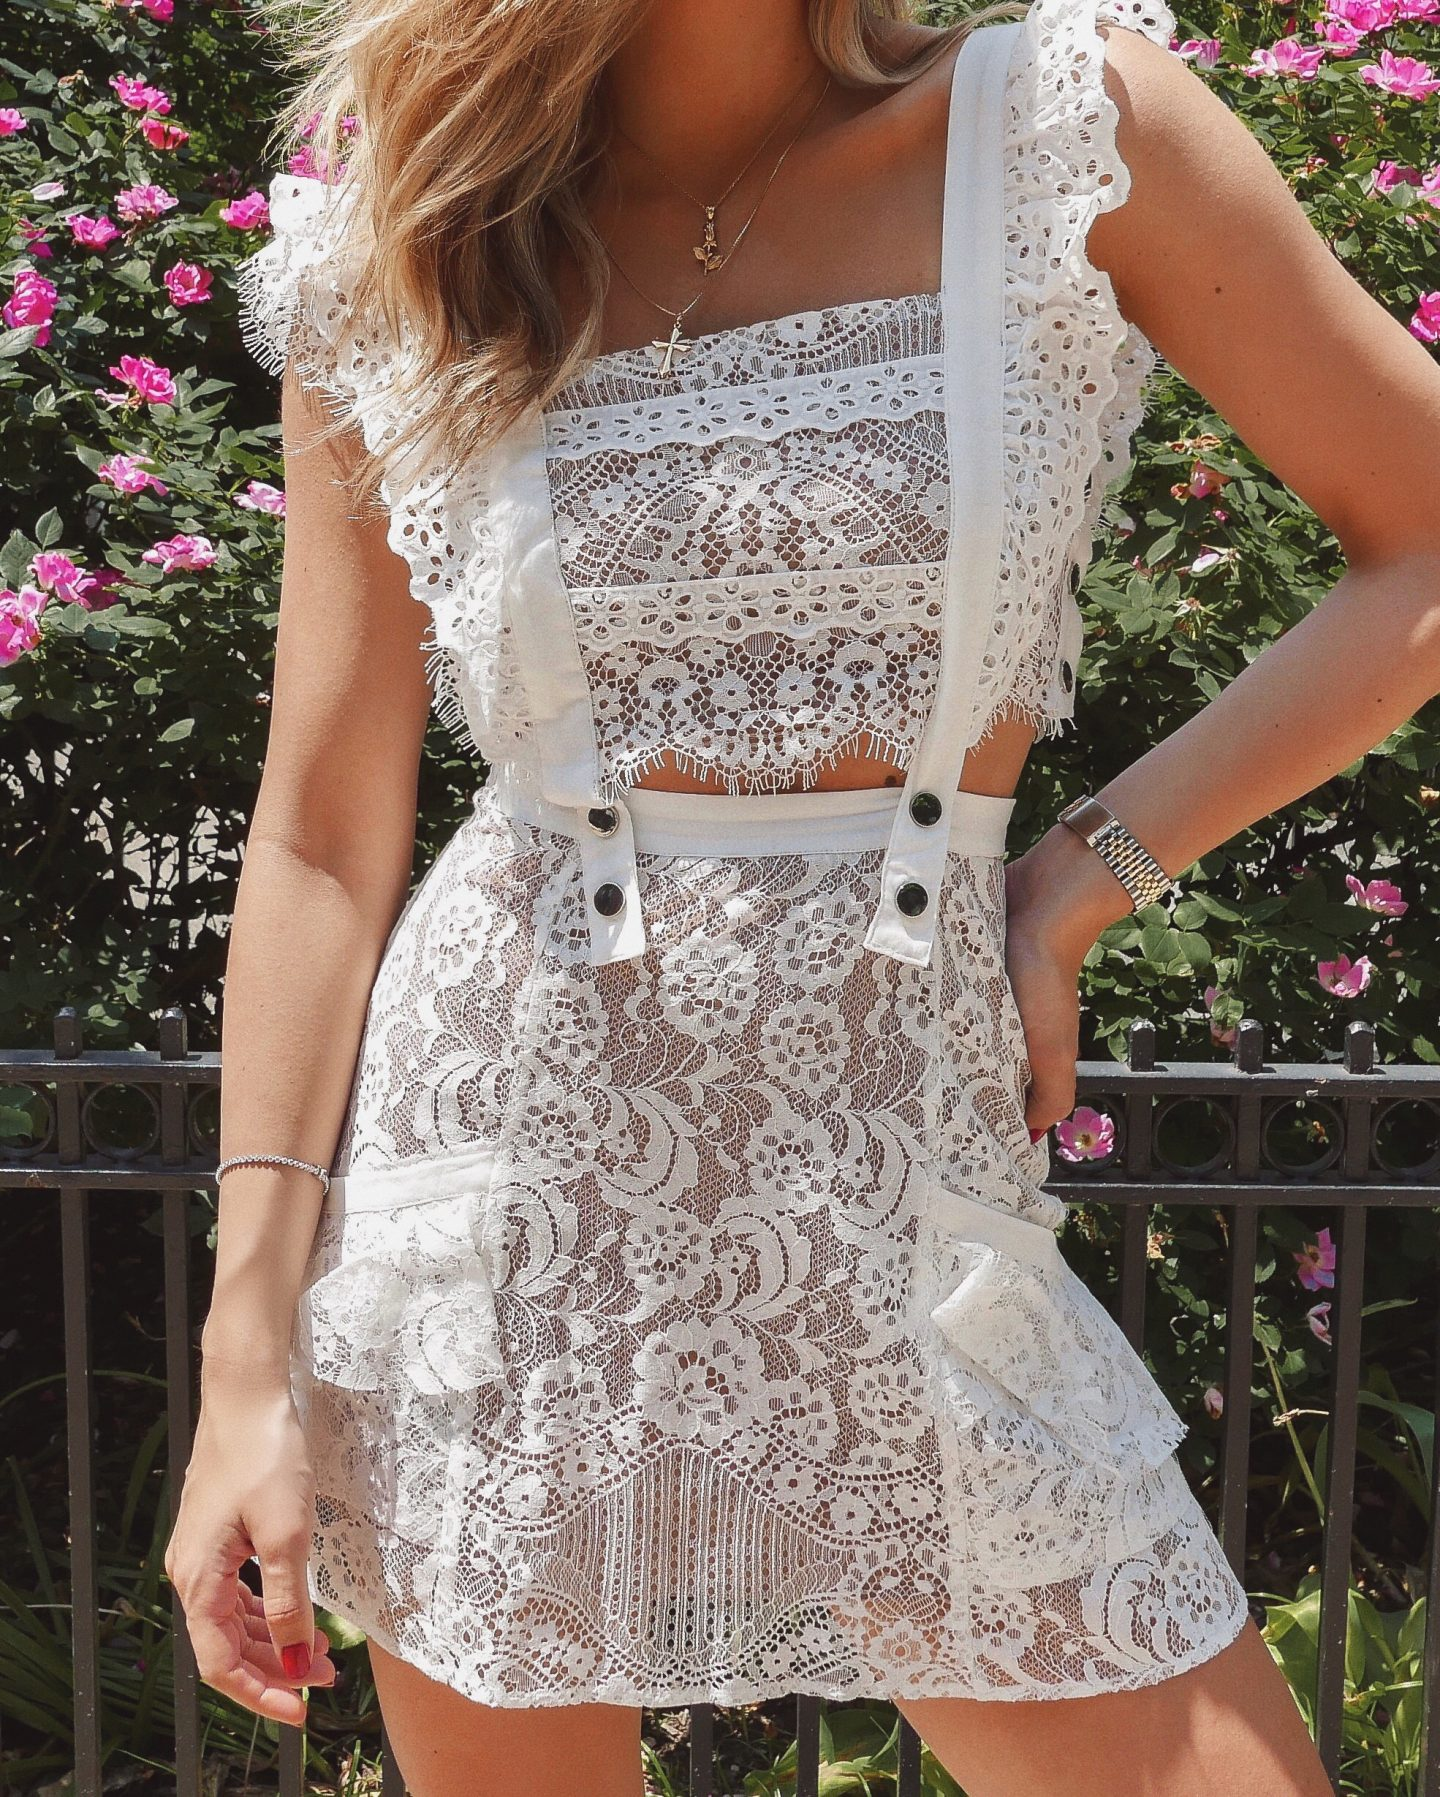 Cassandra DiMicco, Cass DiMicco, Dressed For Dreams, NYC, New York City, New York, Street Style NYC, Street Style 2018, NYC Street Style Street Style Outfits, 2018 Trends, NYC Fashion Blogger, for love and lemons lace dress, lace dress, for love and lemons Tati lace dress, white lace dress